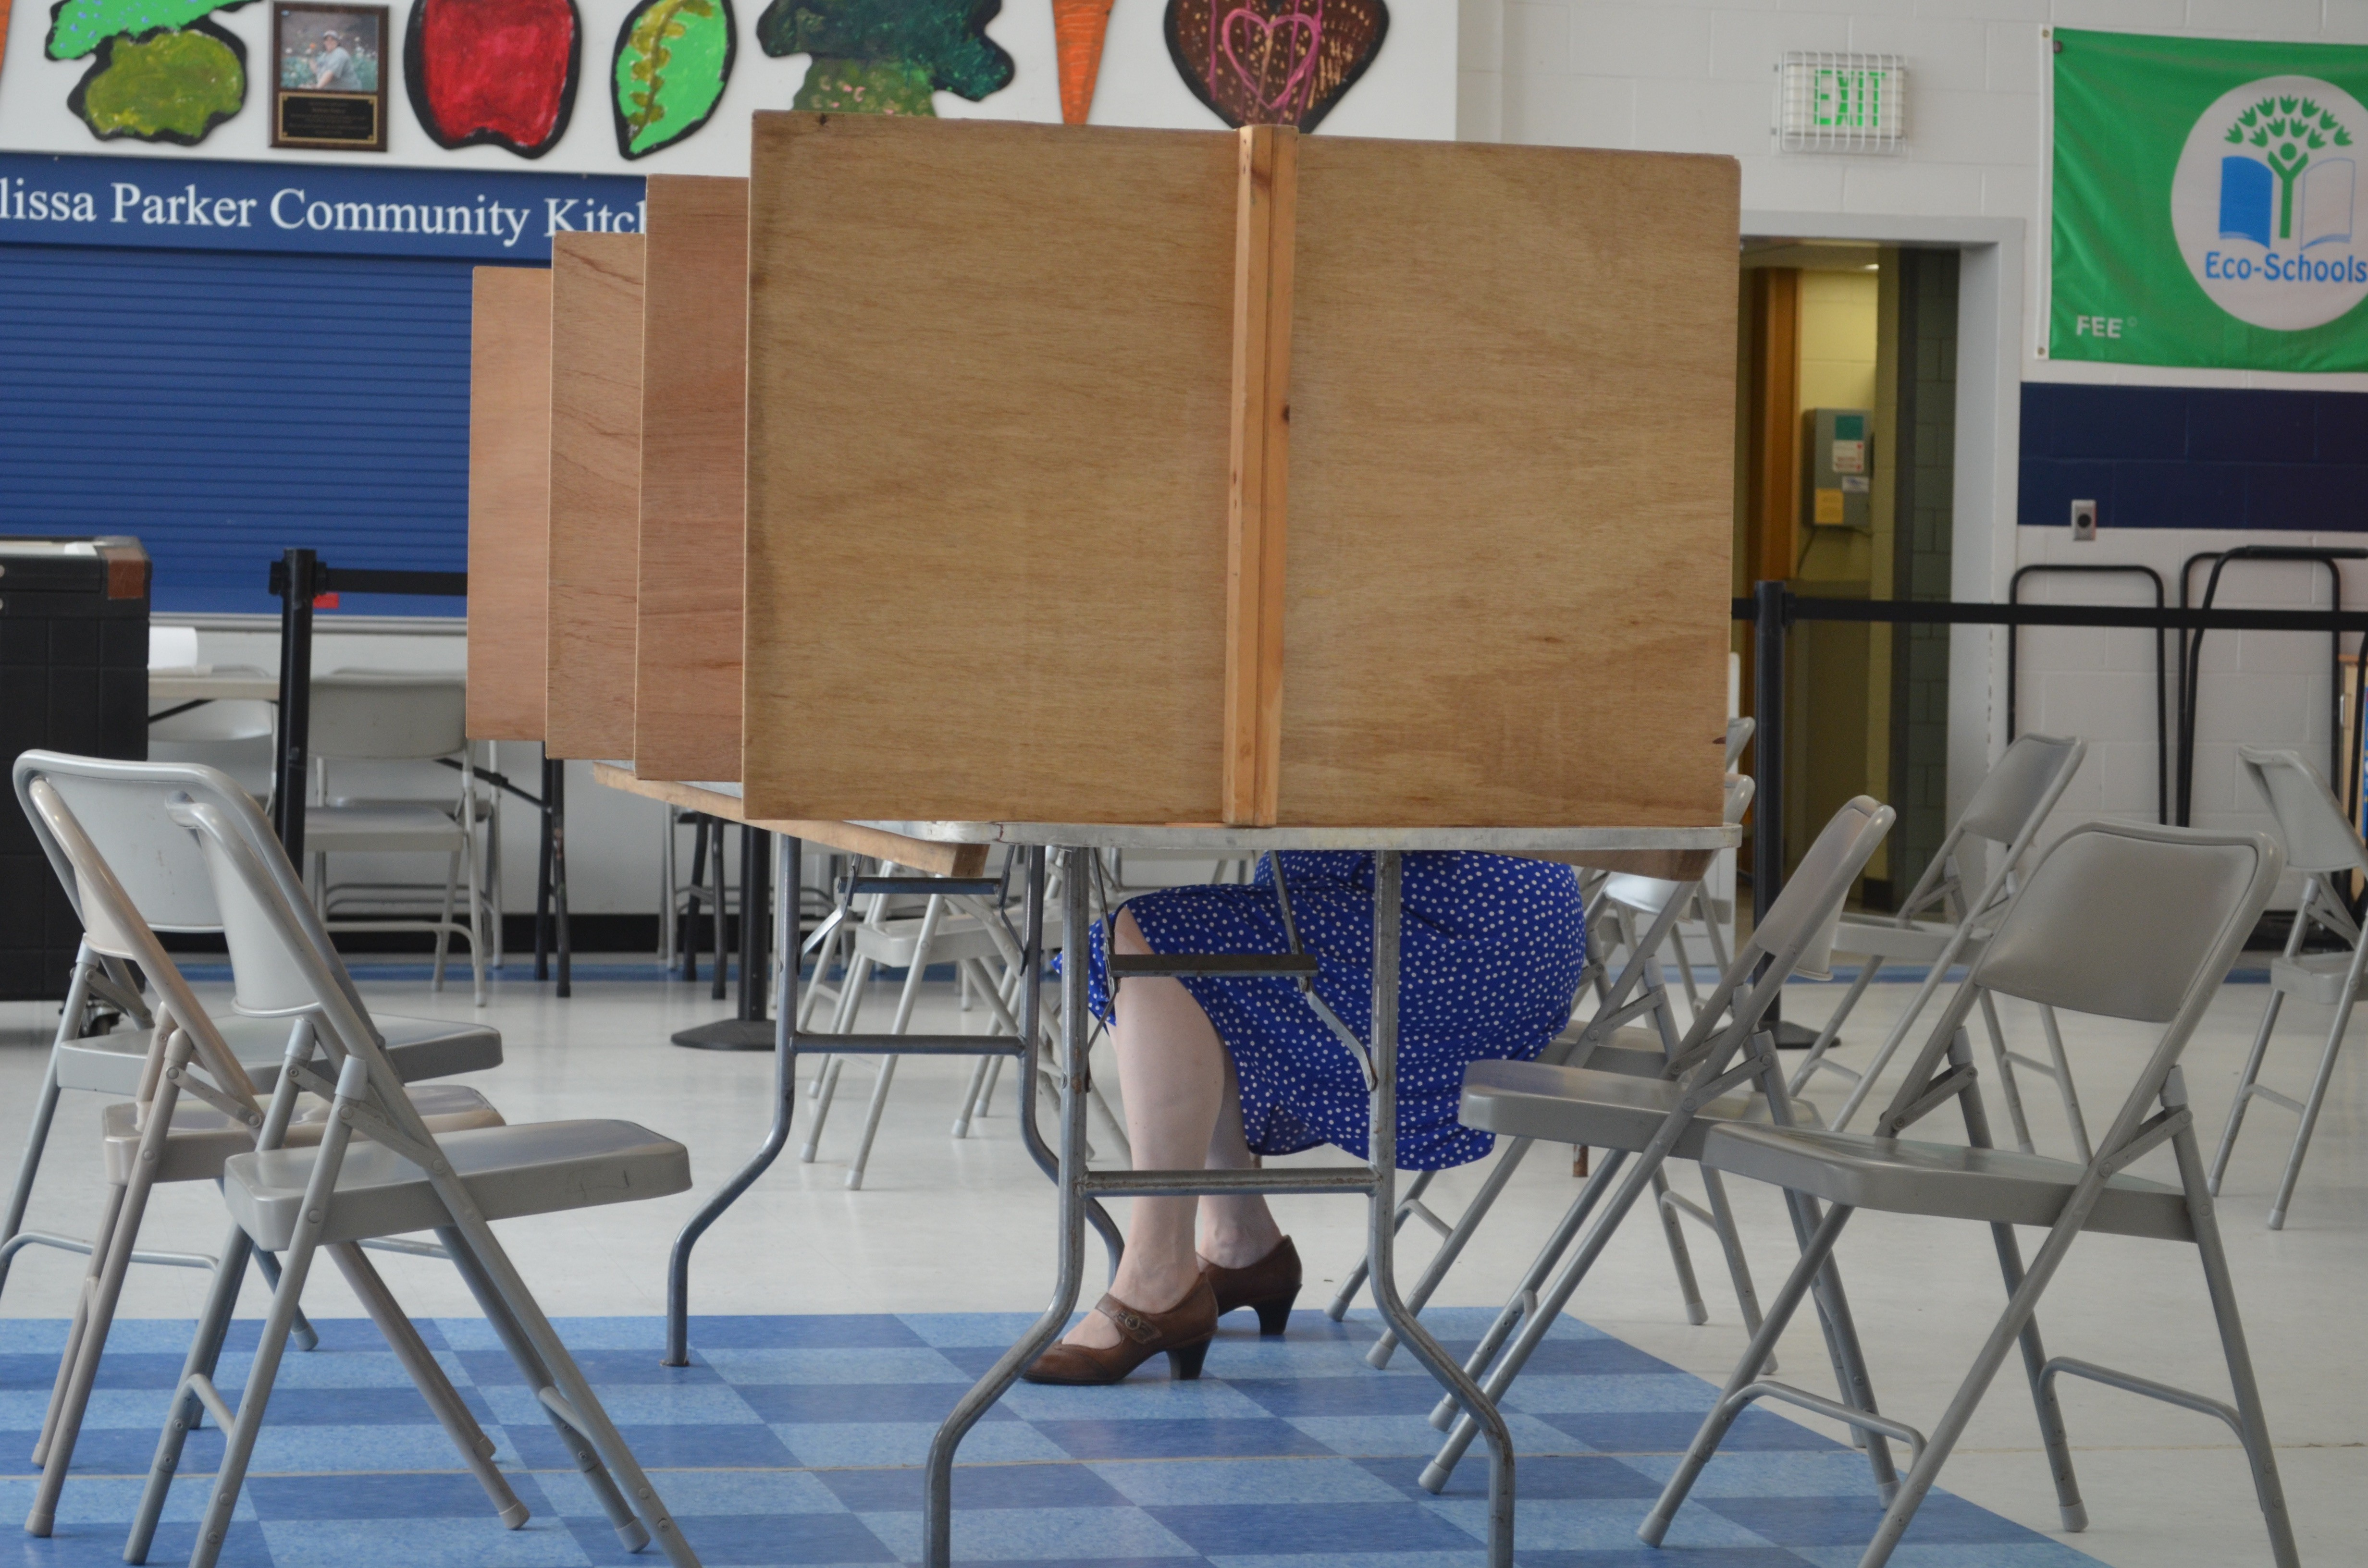 Candidates File for Vermont Races Ahead of Thursday's Deadline